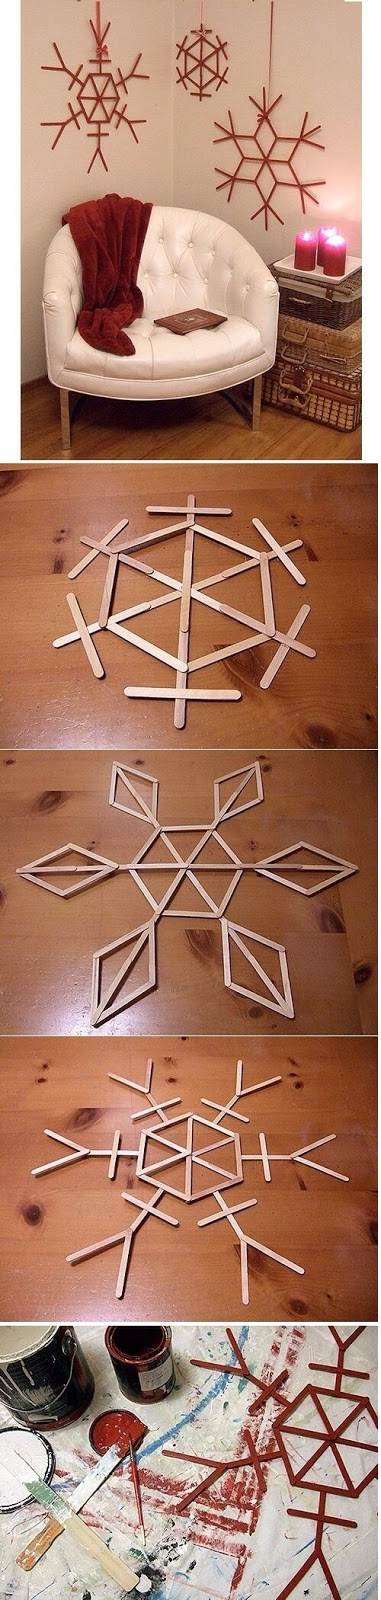 DIY Popsicle Stick Snow Flakes